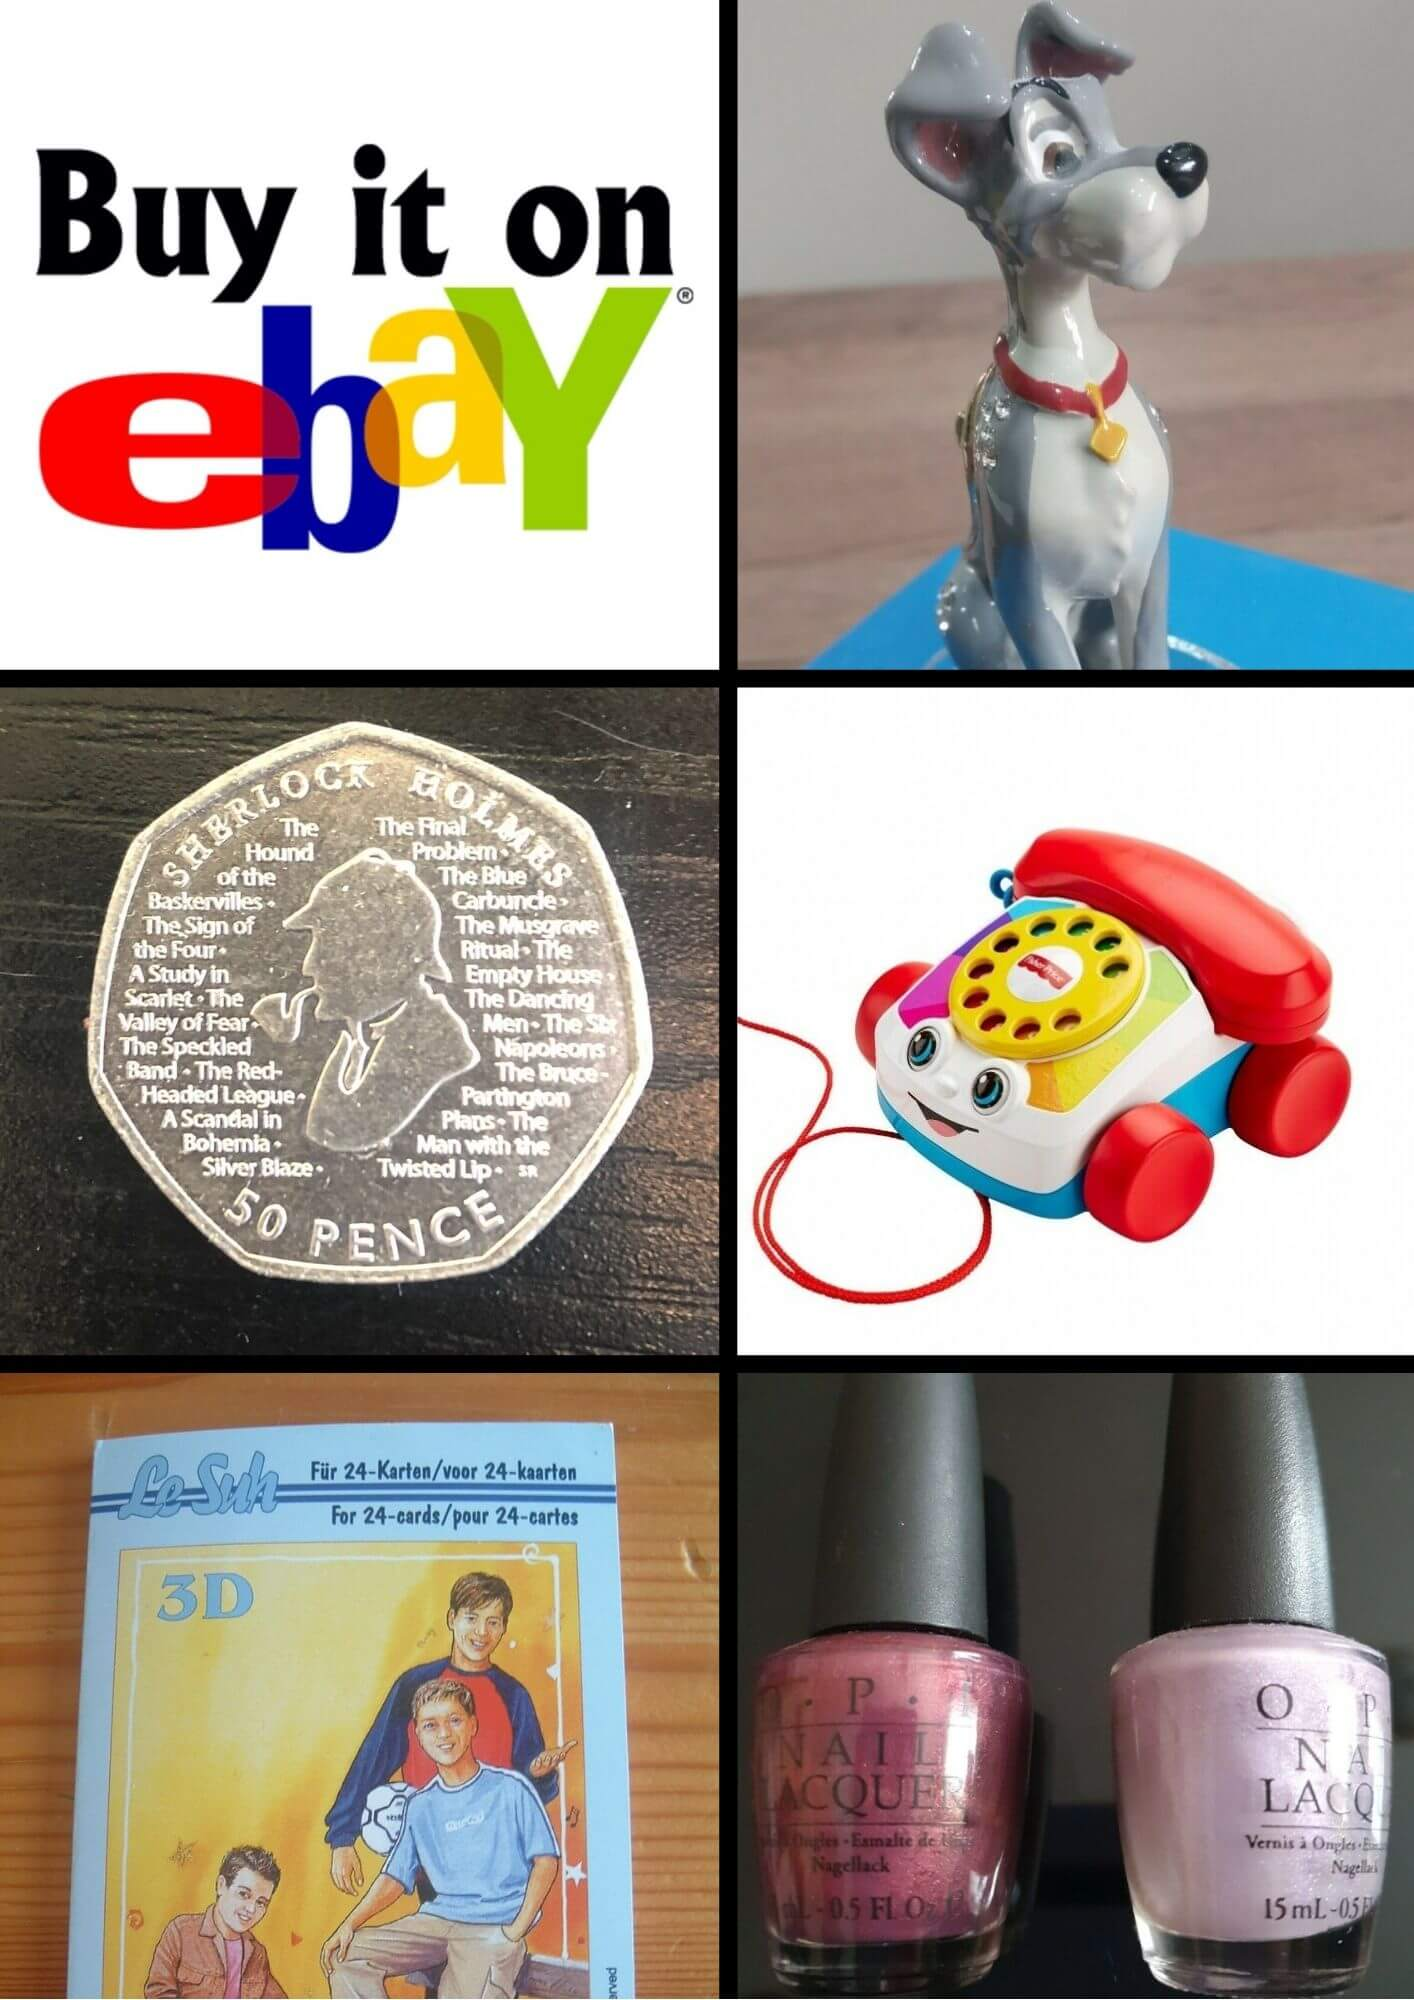 Examples of items sold on ebay